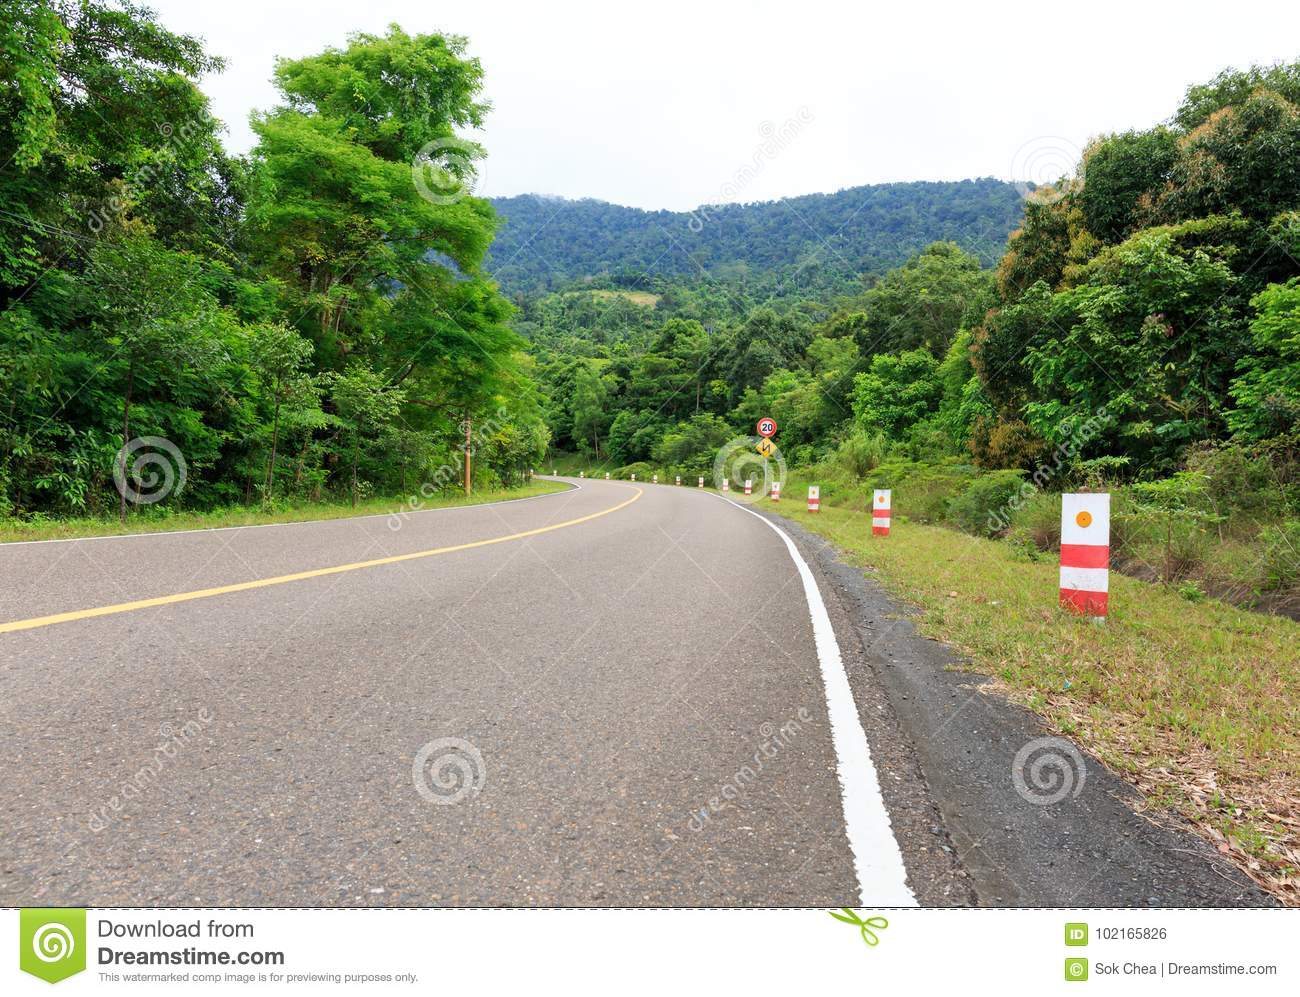 Bending Road to the Top of a Mountain with Green Trees and Traffic Signs